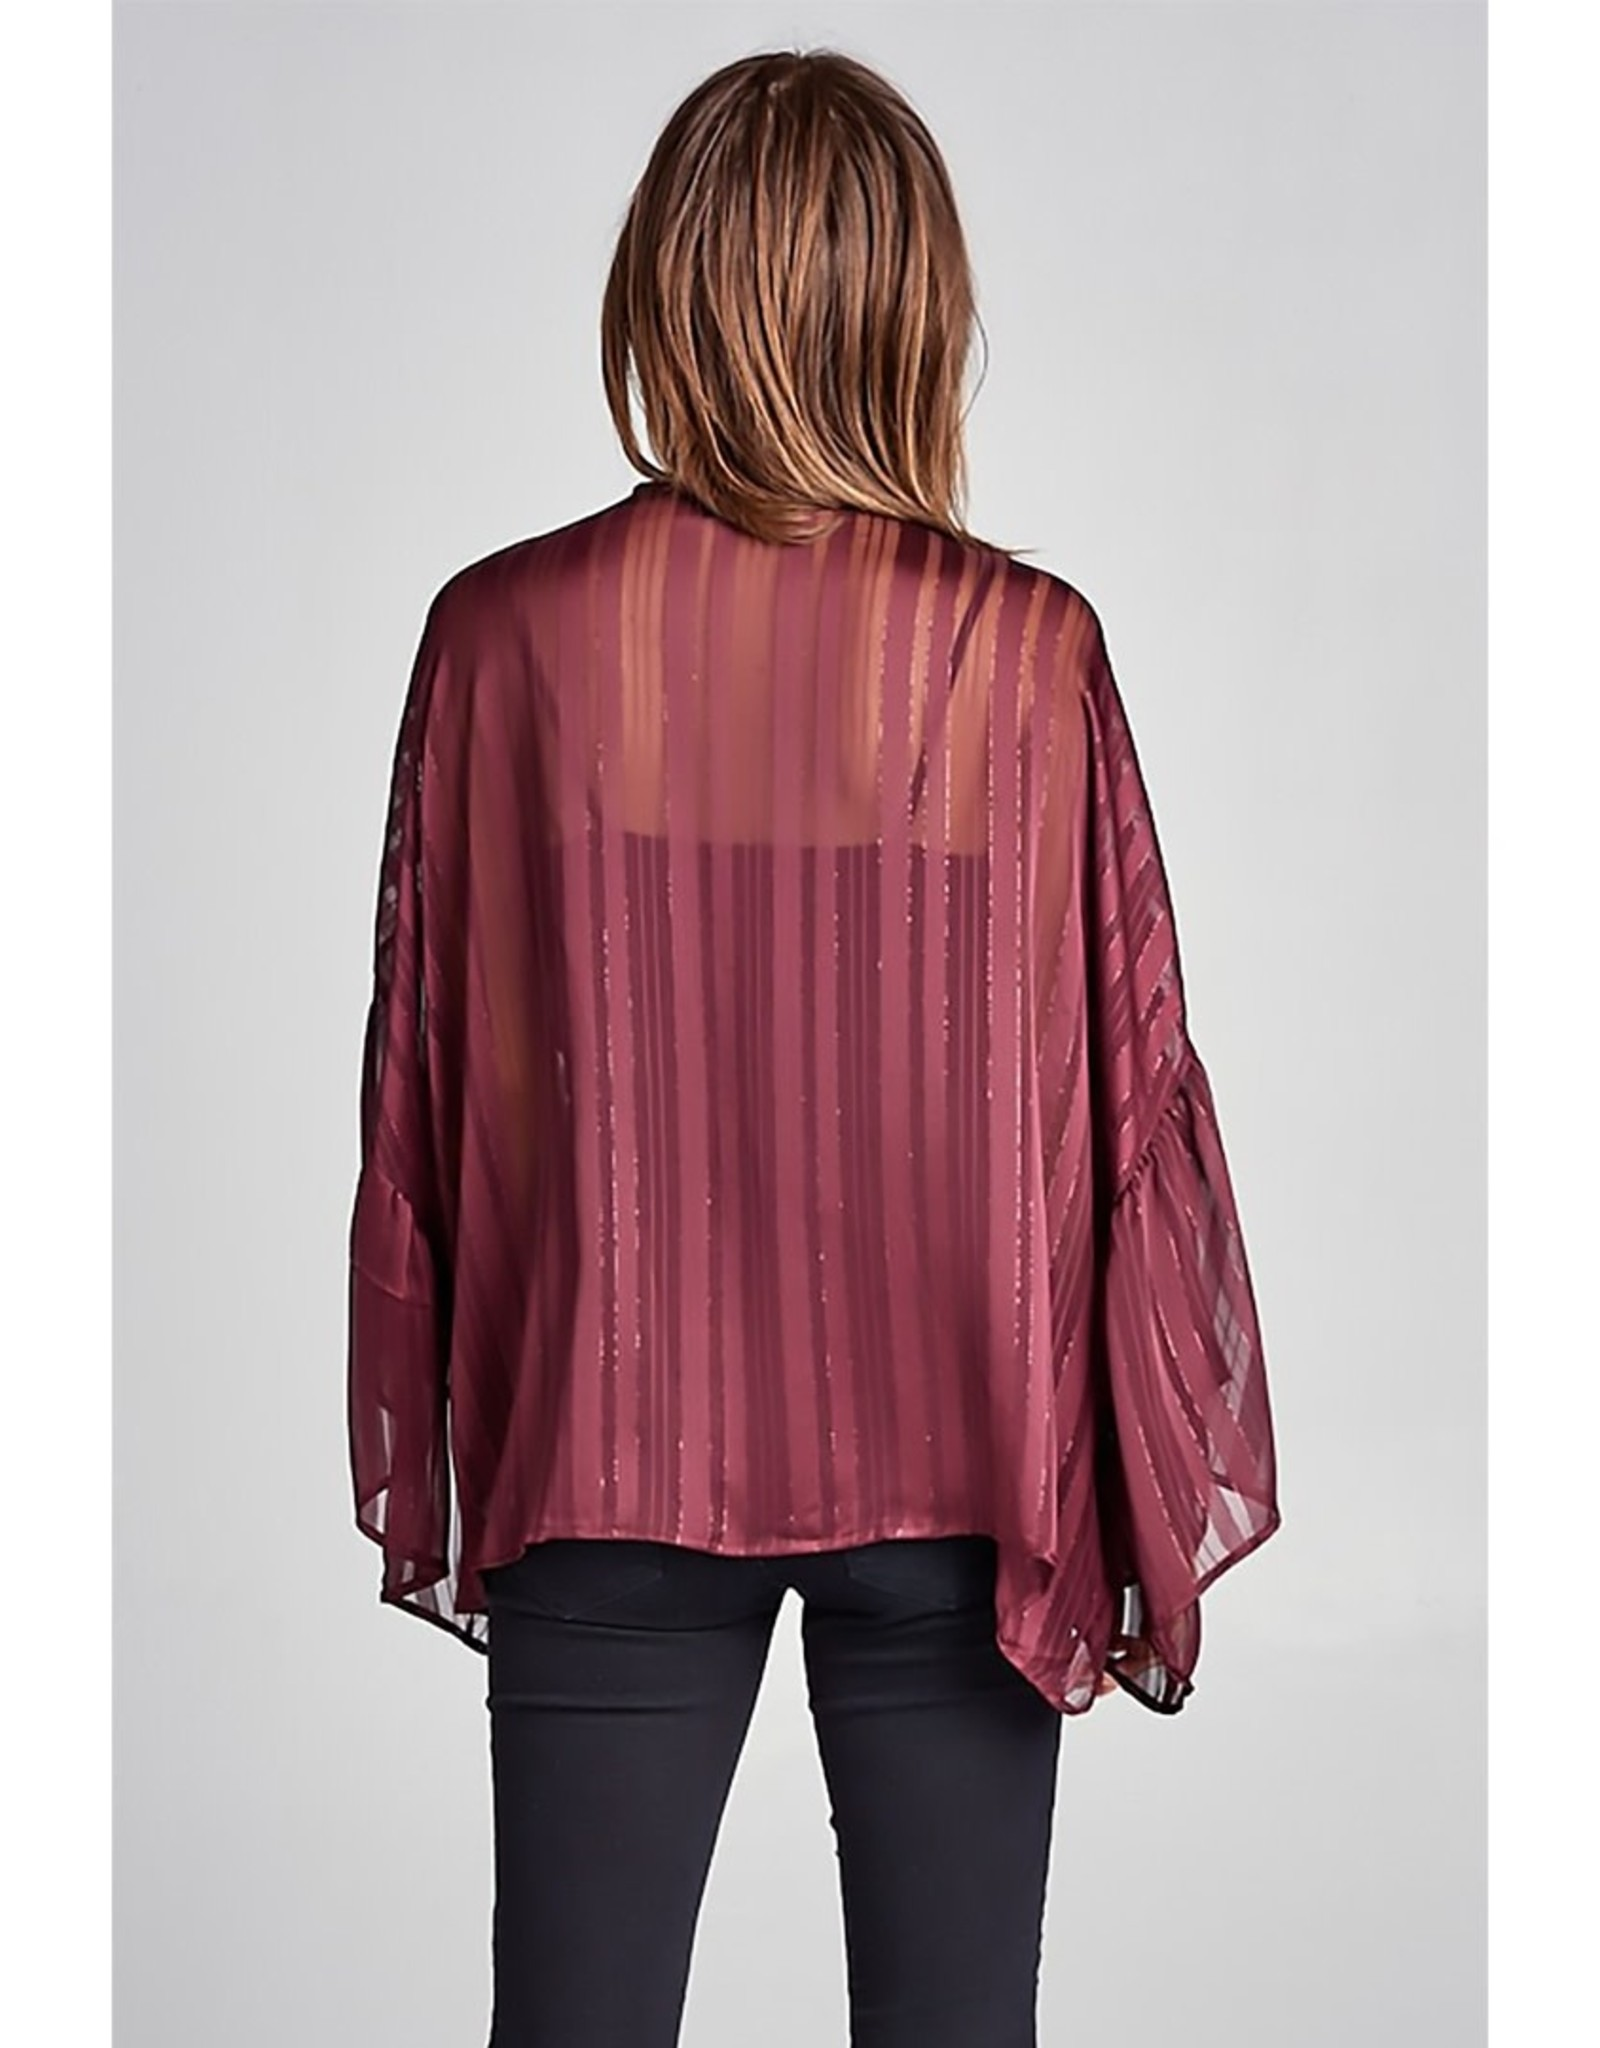 ReneeC Sheer Metallic Striped Kimono